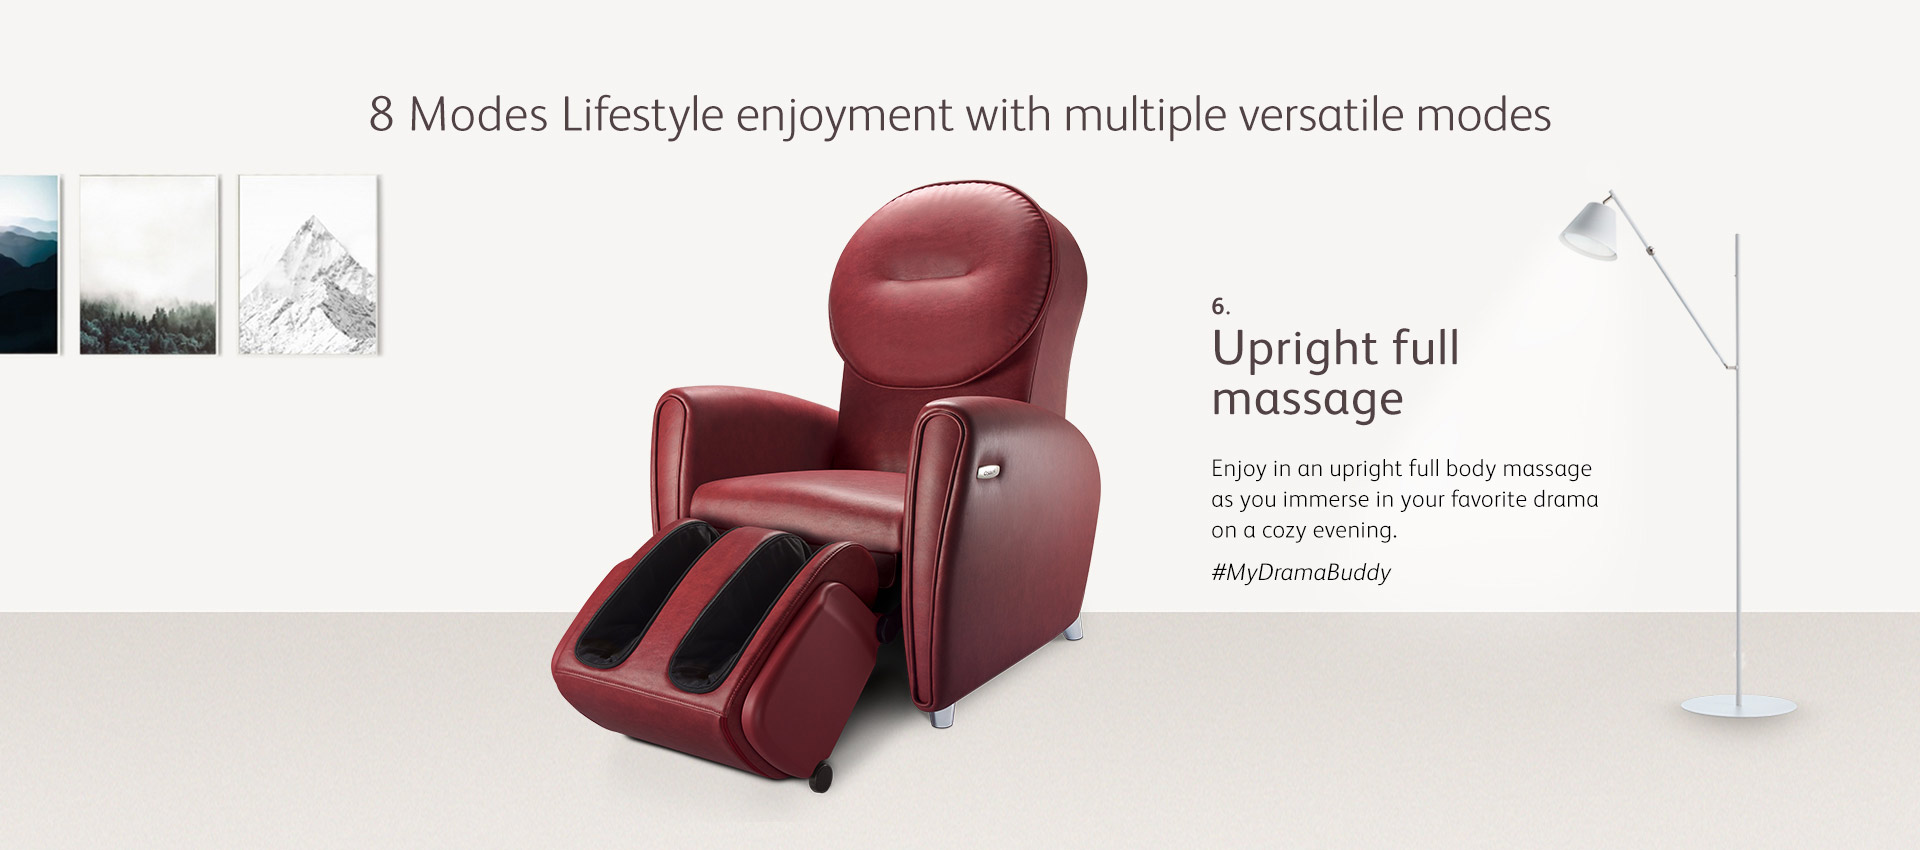 Independently Controlled Backrest Withinnovative Massage Technology